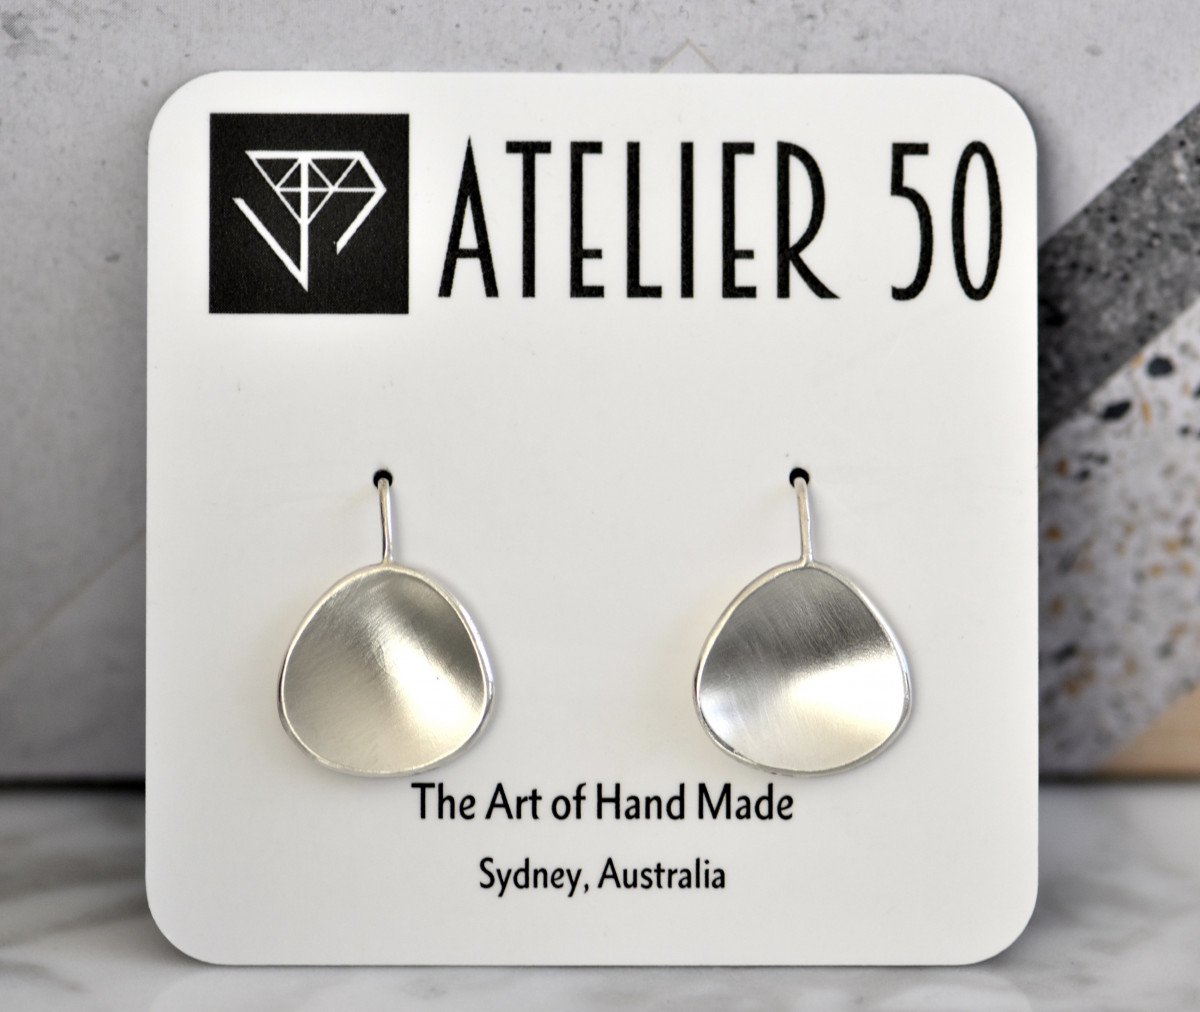 Atelier 50 Atelier 50 Jewellery Sydney Nsw Accessories